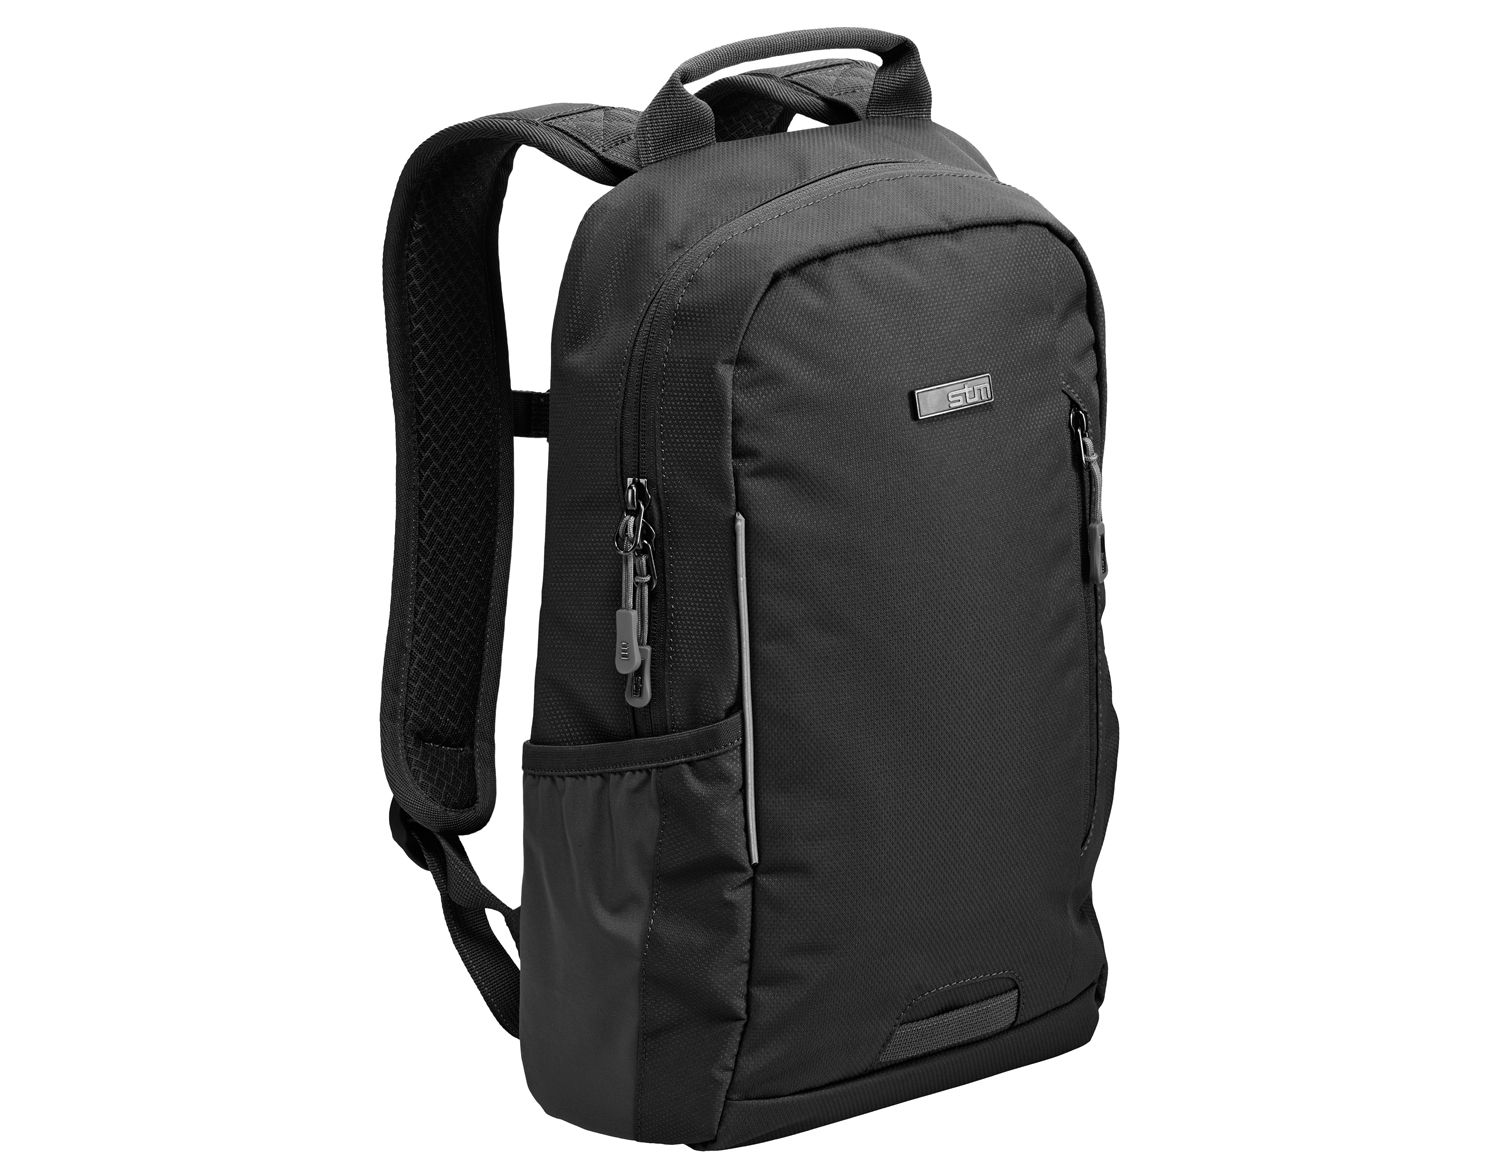 The Aero Backpack From Stm Bags Review Small Yet Spacious